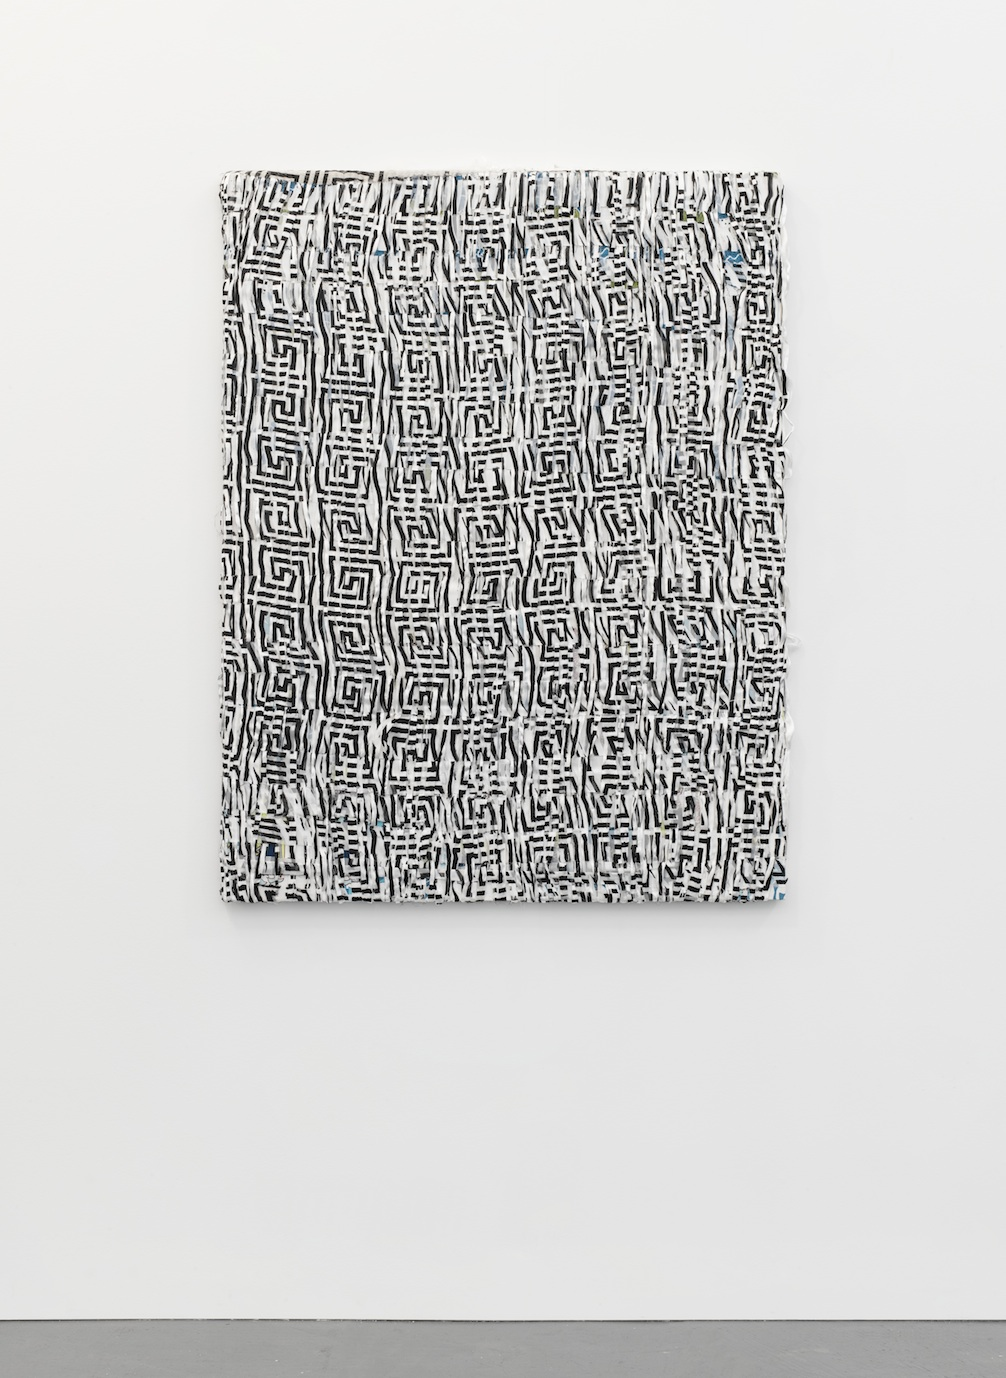 Hay King  2013  Polyester, bamboo, rayon, silk and acrylic  122 x 92 cm / 48 x 36 in